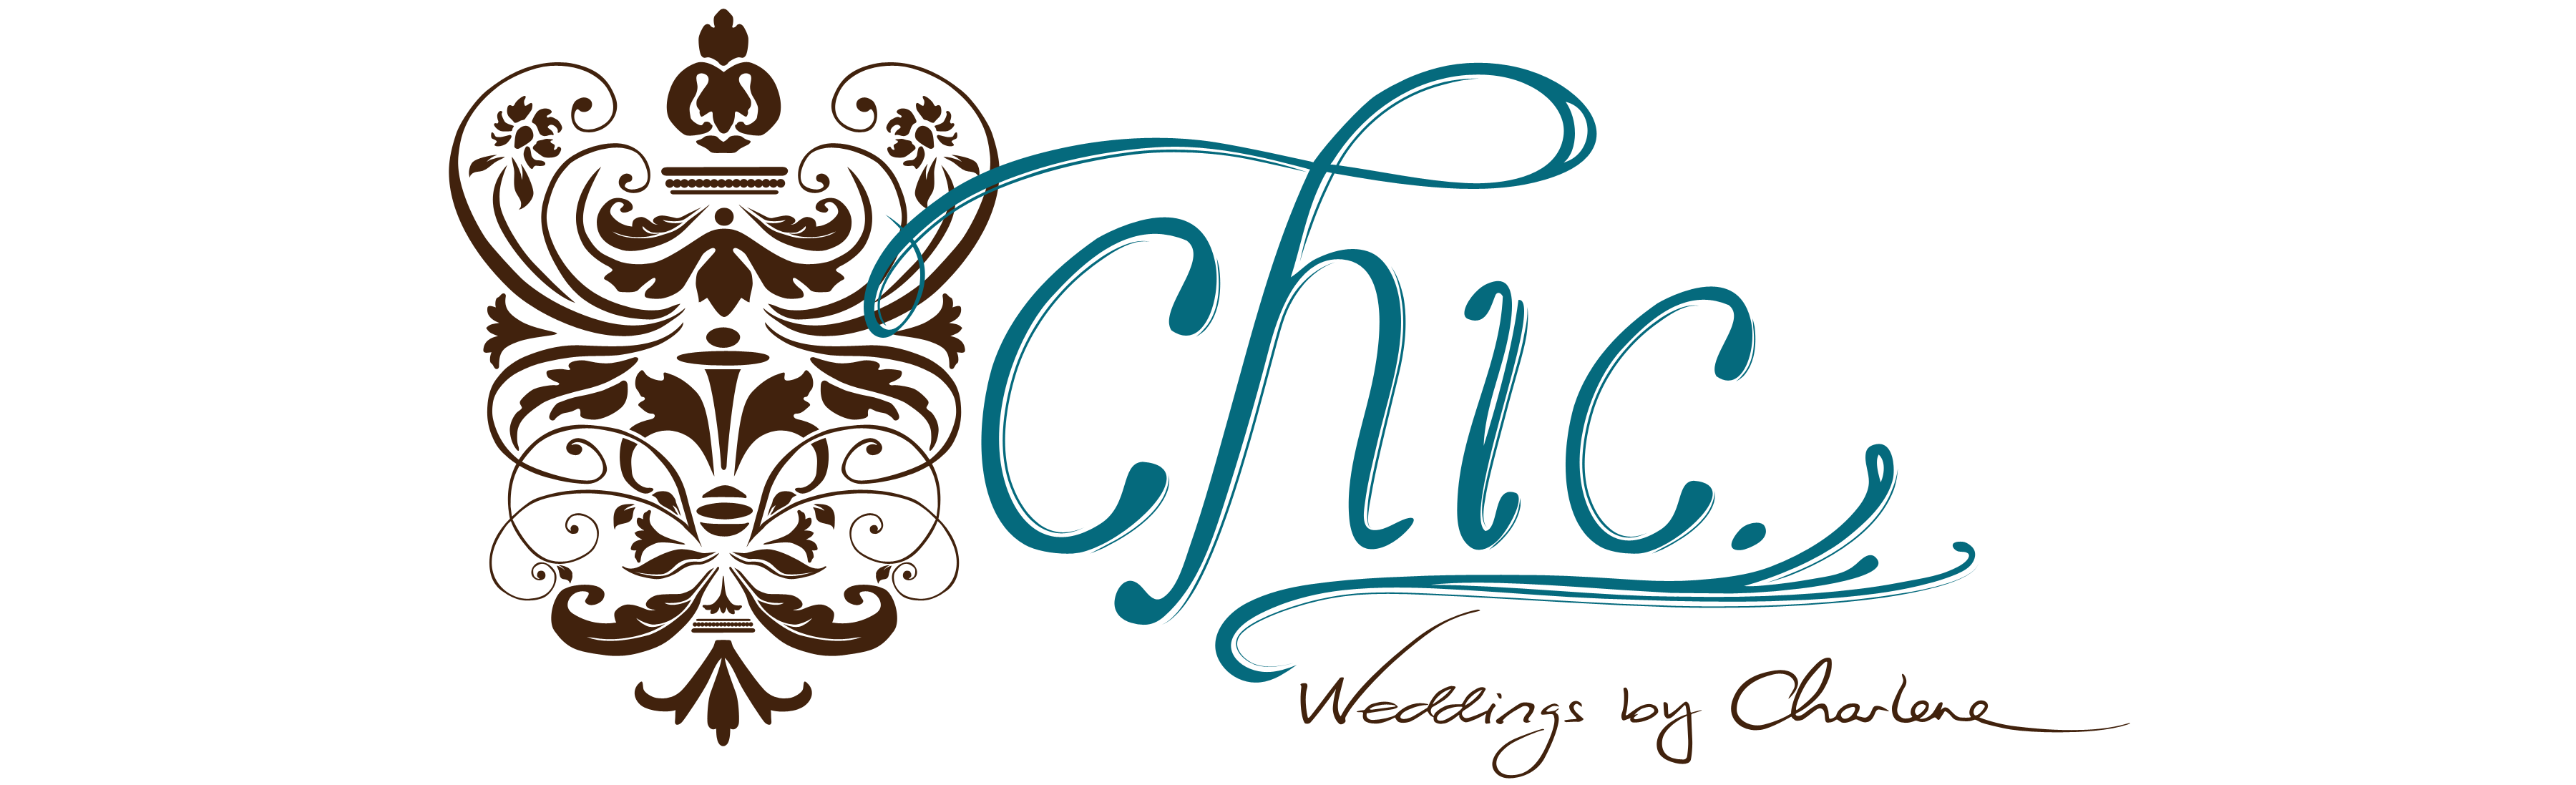 Posted by Chic. Weddings by Charlene - A Event Planner professional